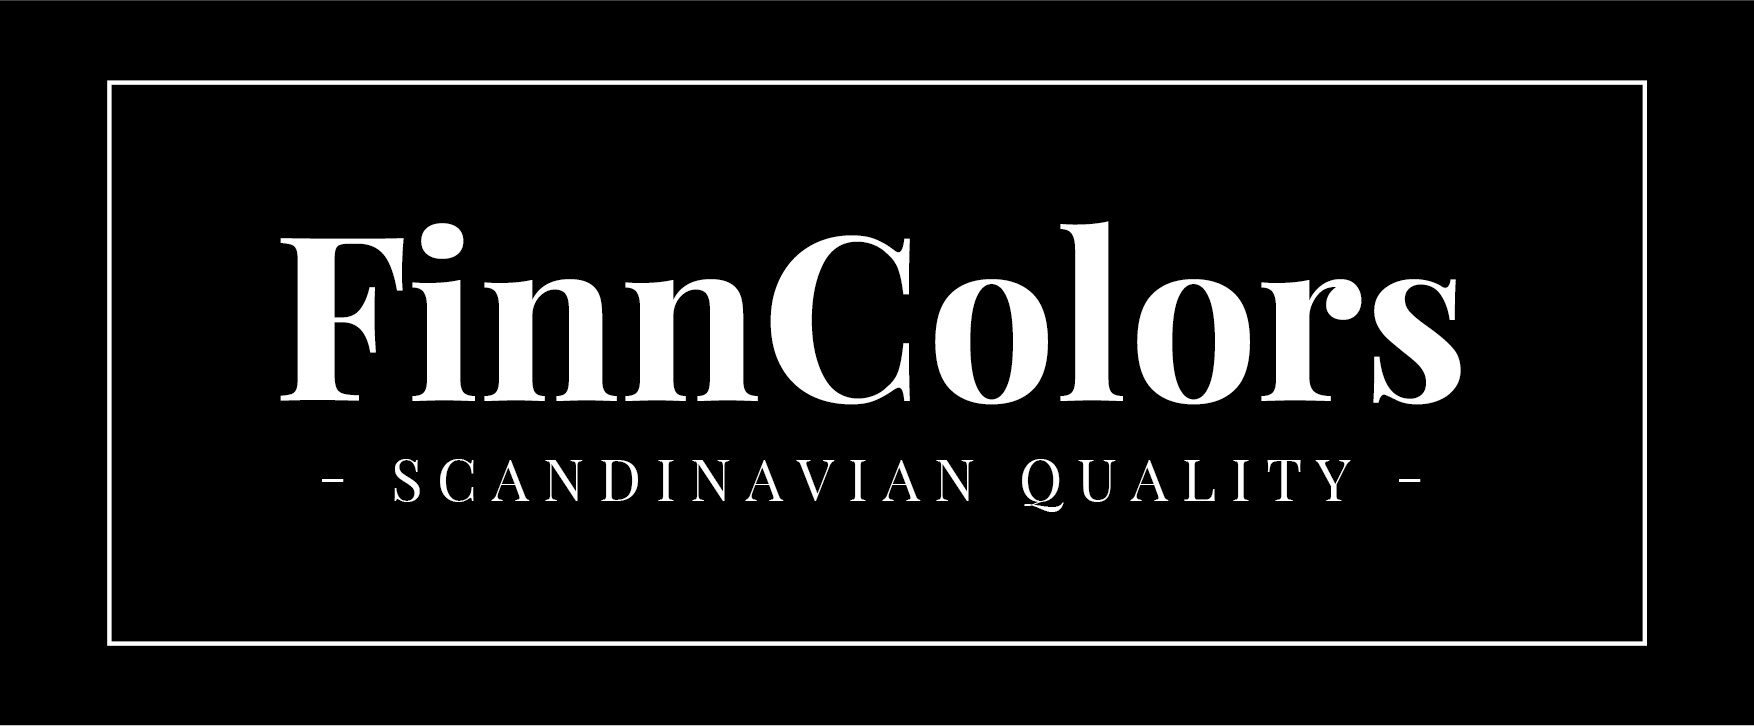 Finncolors